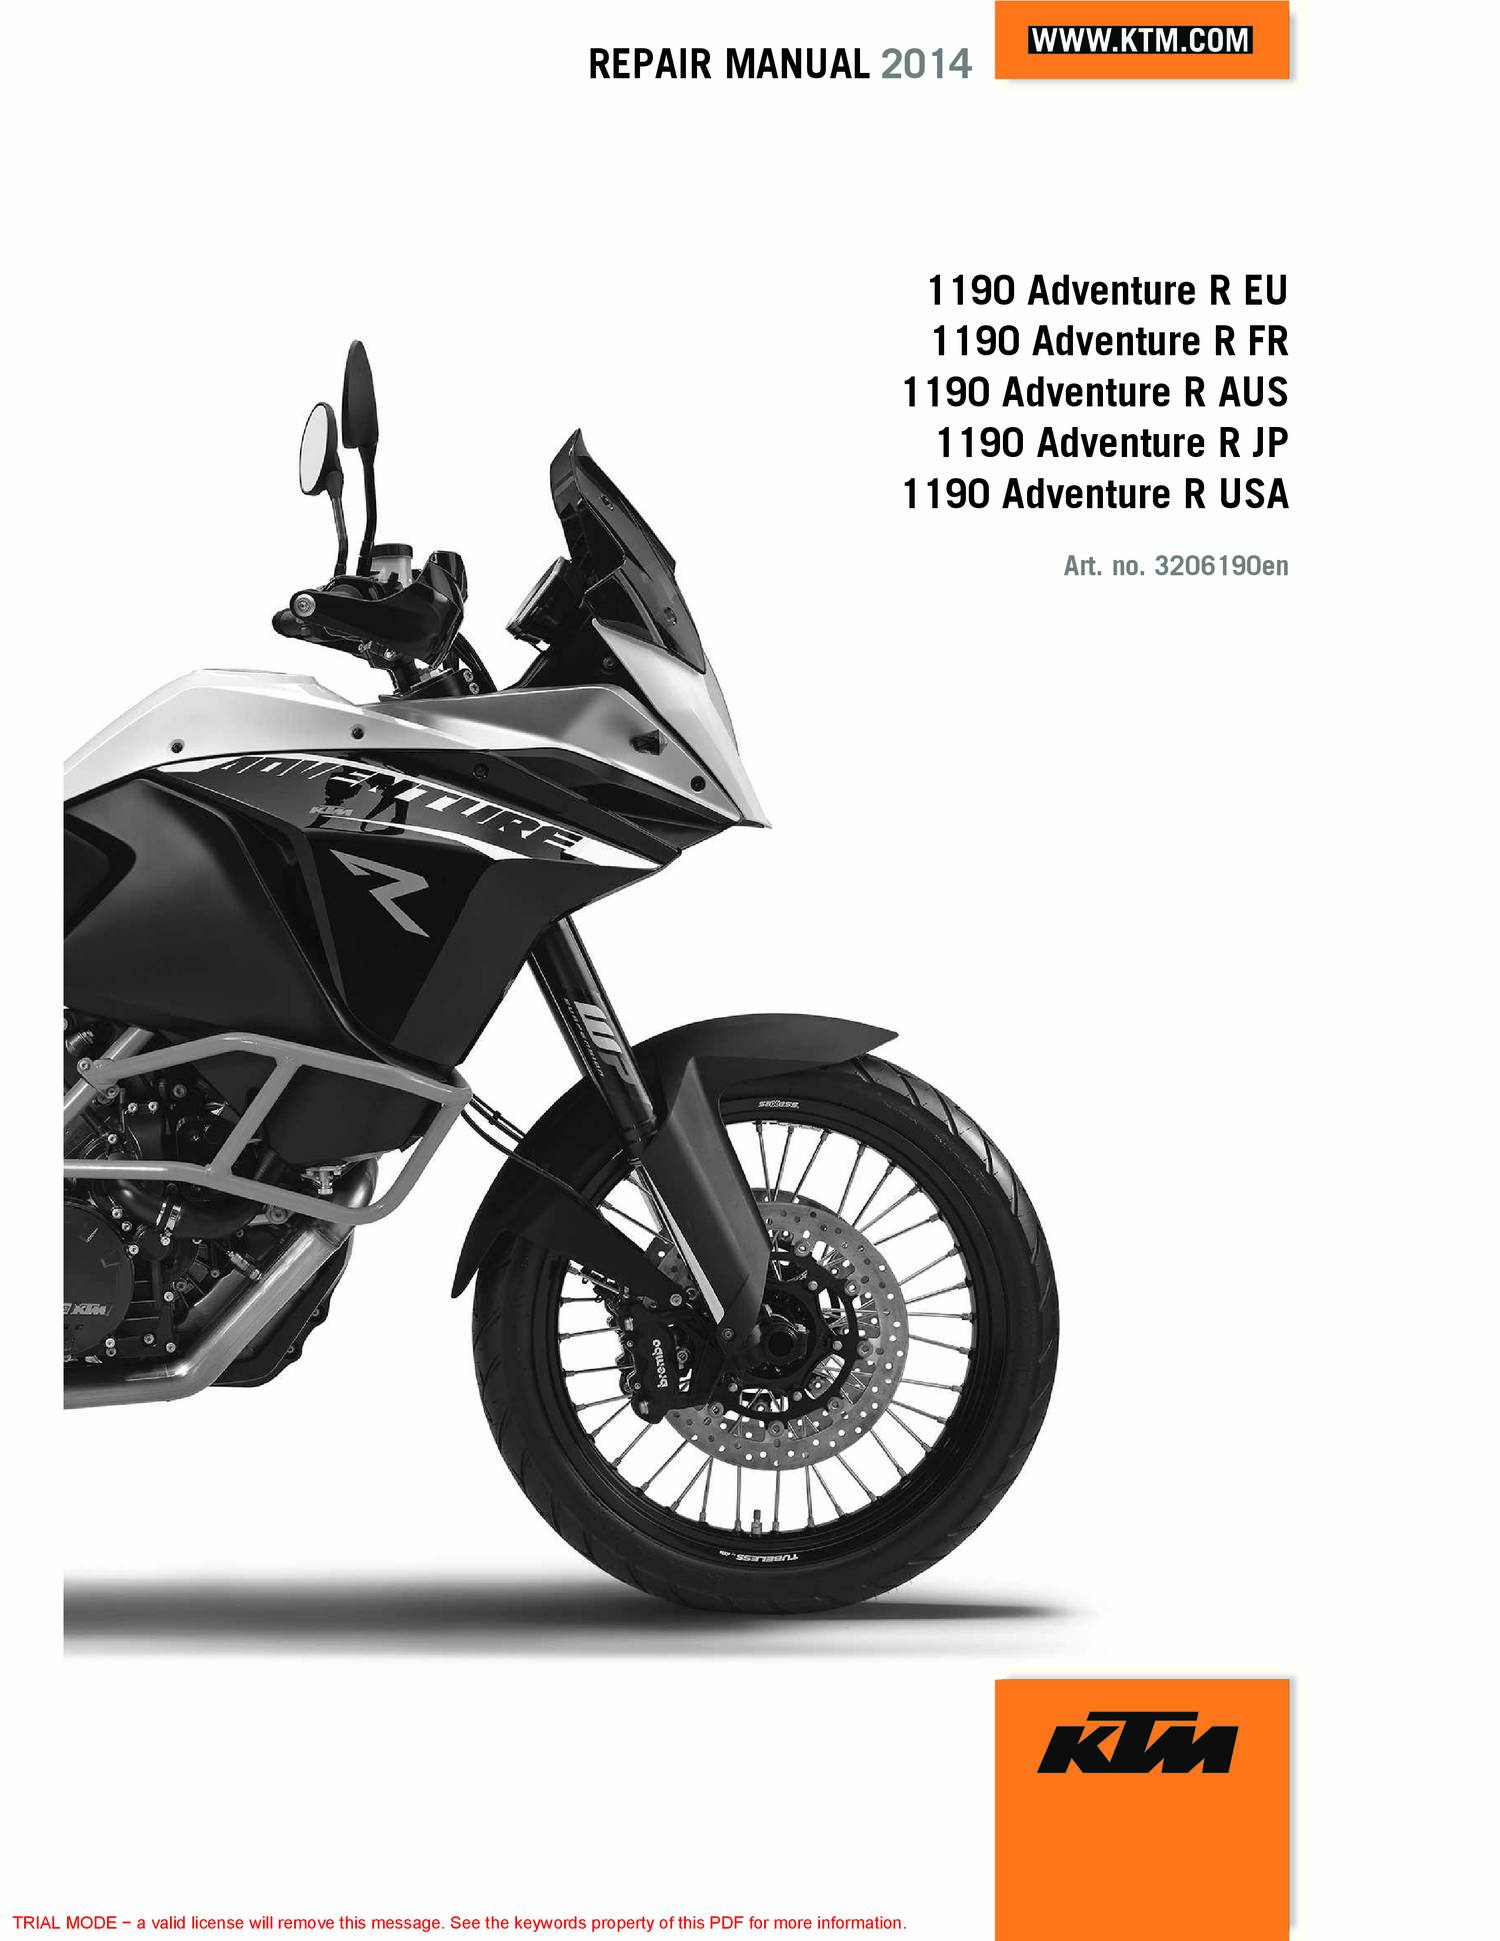 Ktm Service Manual Download